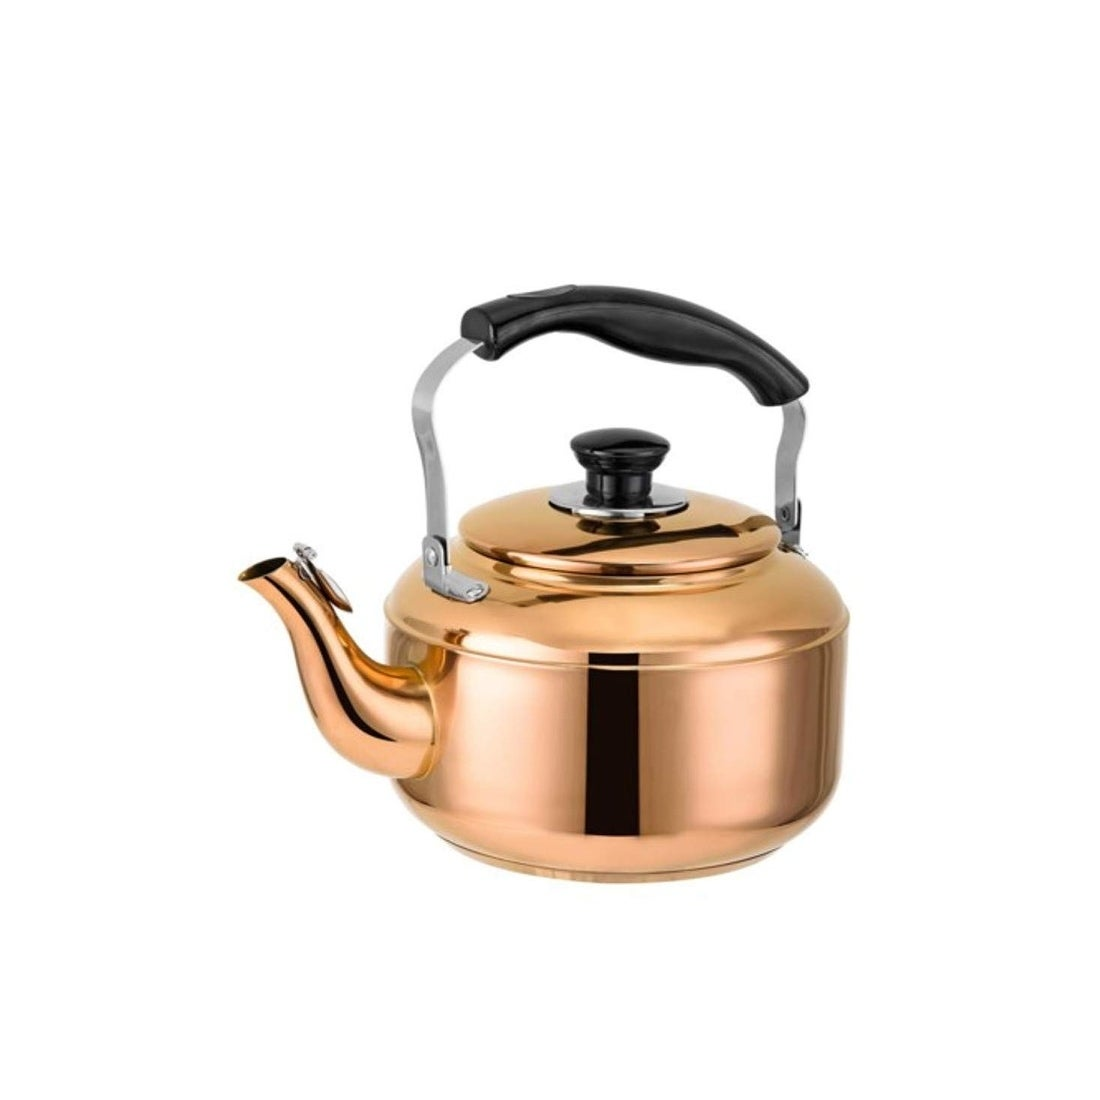 Old Dutch DuraCopper Stainless steel Whistling Stove top Teapot Kettle in Copper